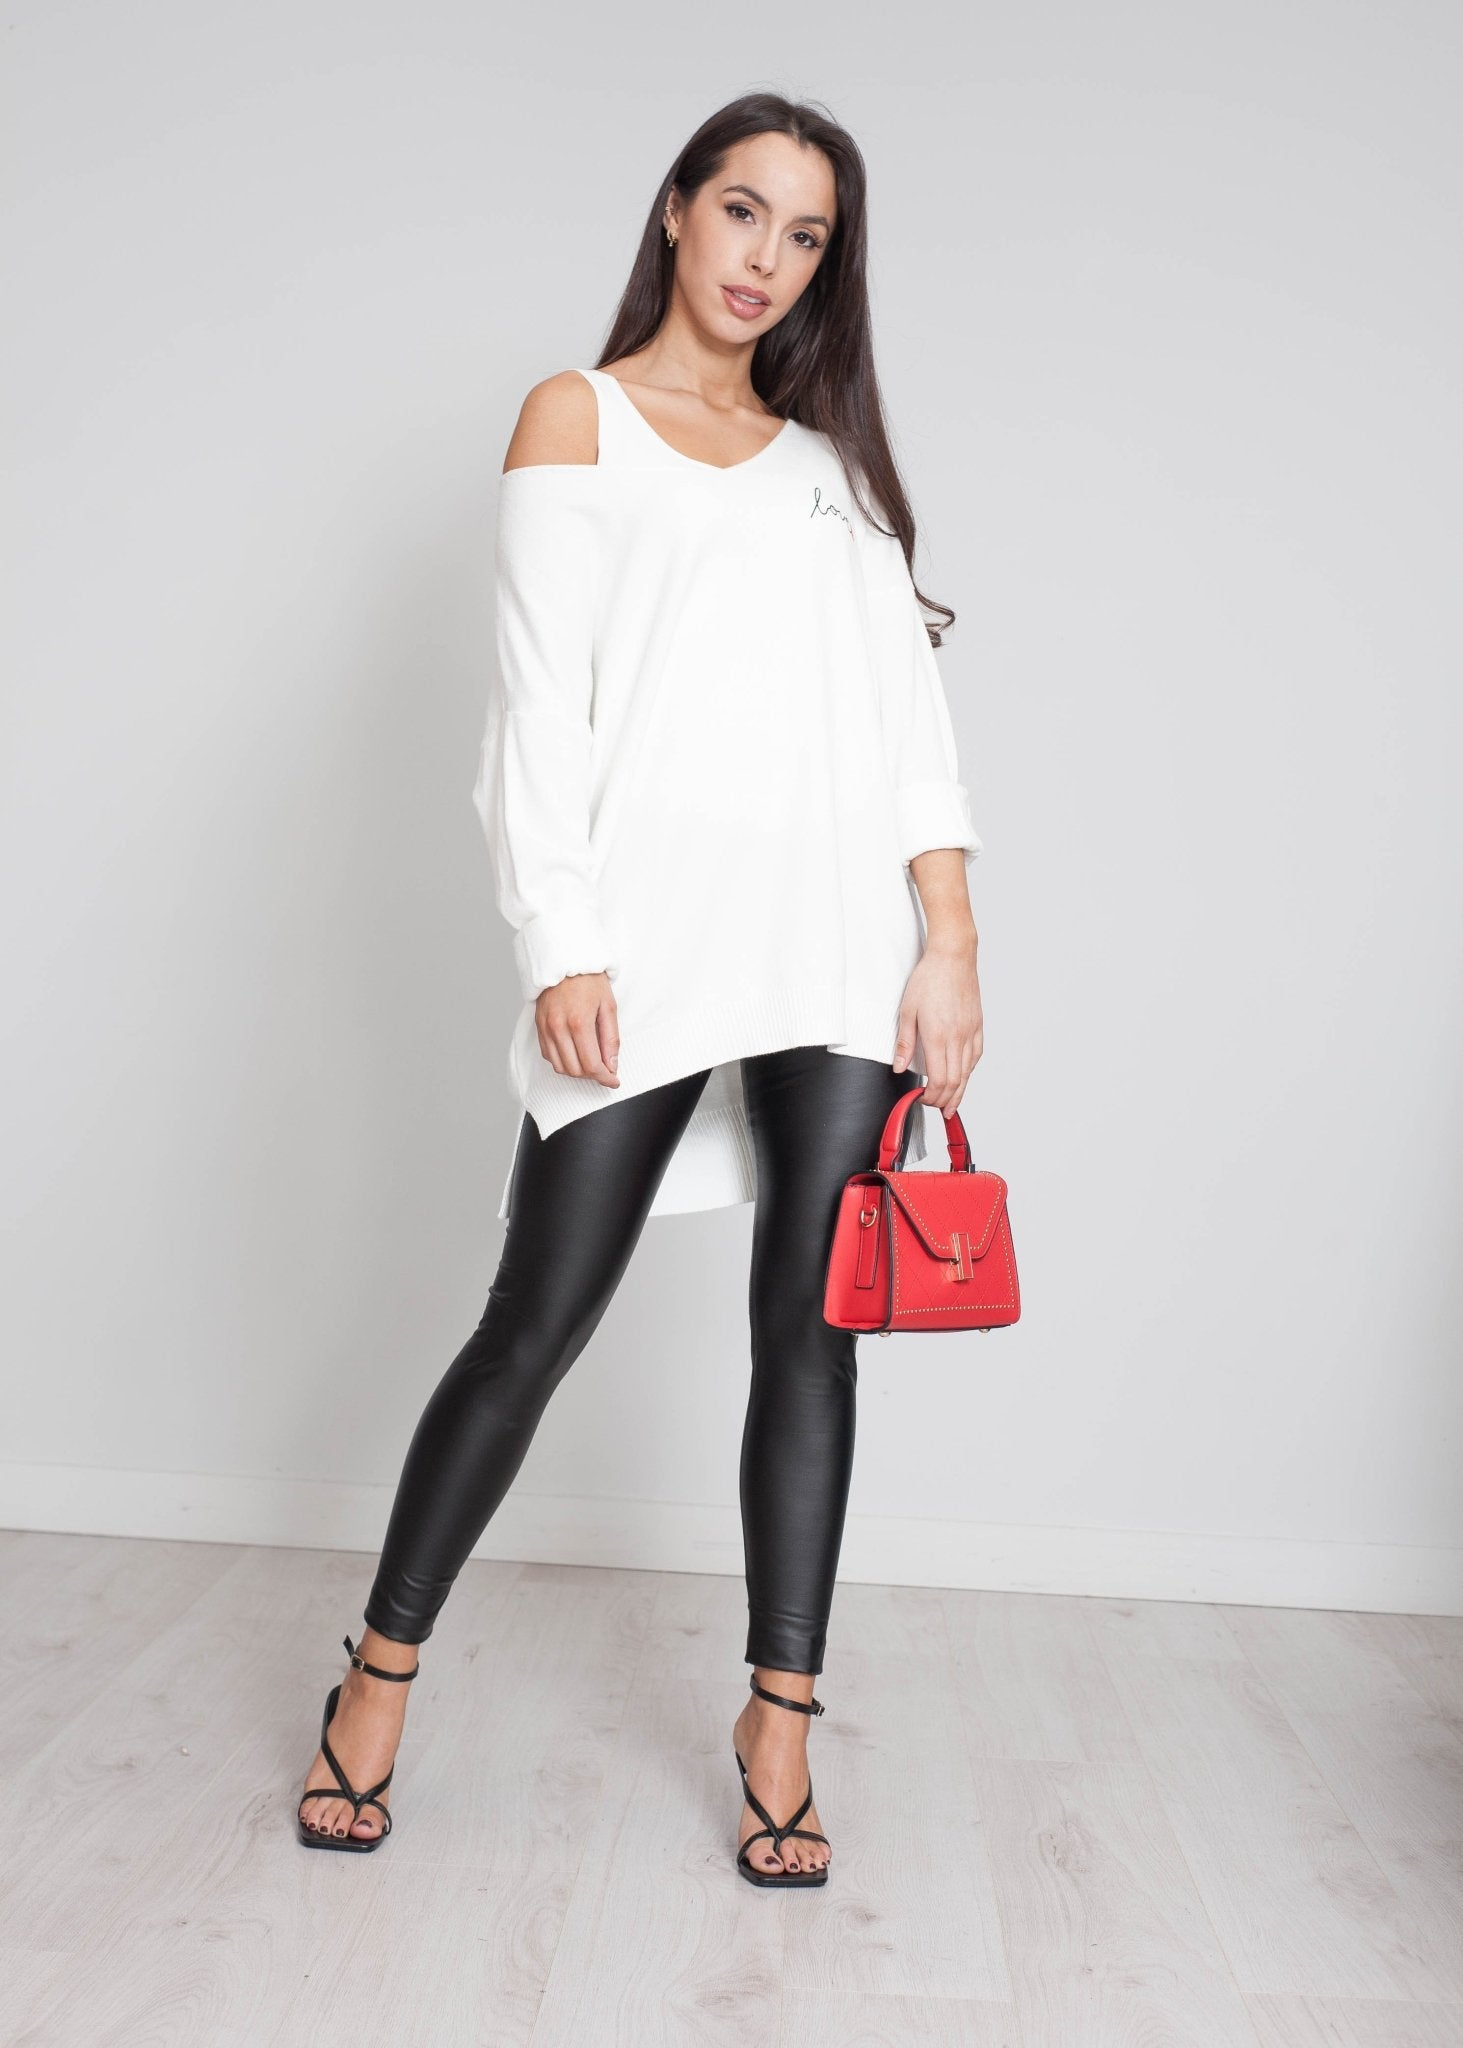 Priya Love Logo Knit In White - The Walk in Wardrobe